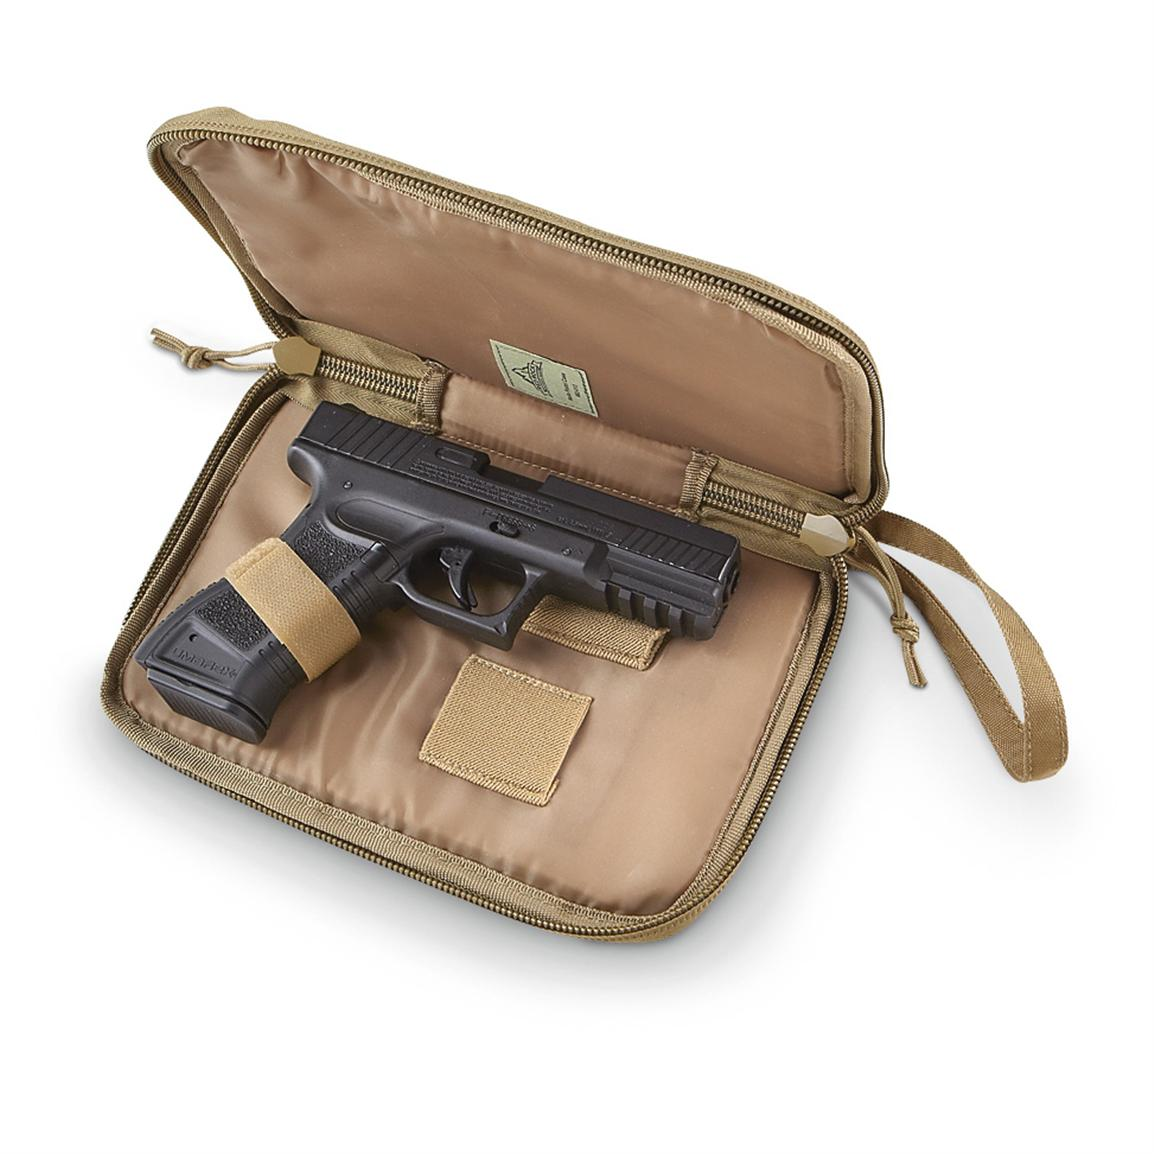 Red Rock™ M.O.L.L.E. Pistol Case, Coyote Tan